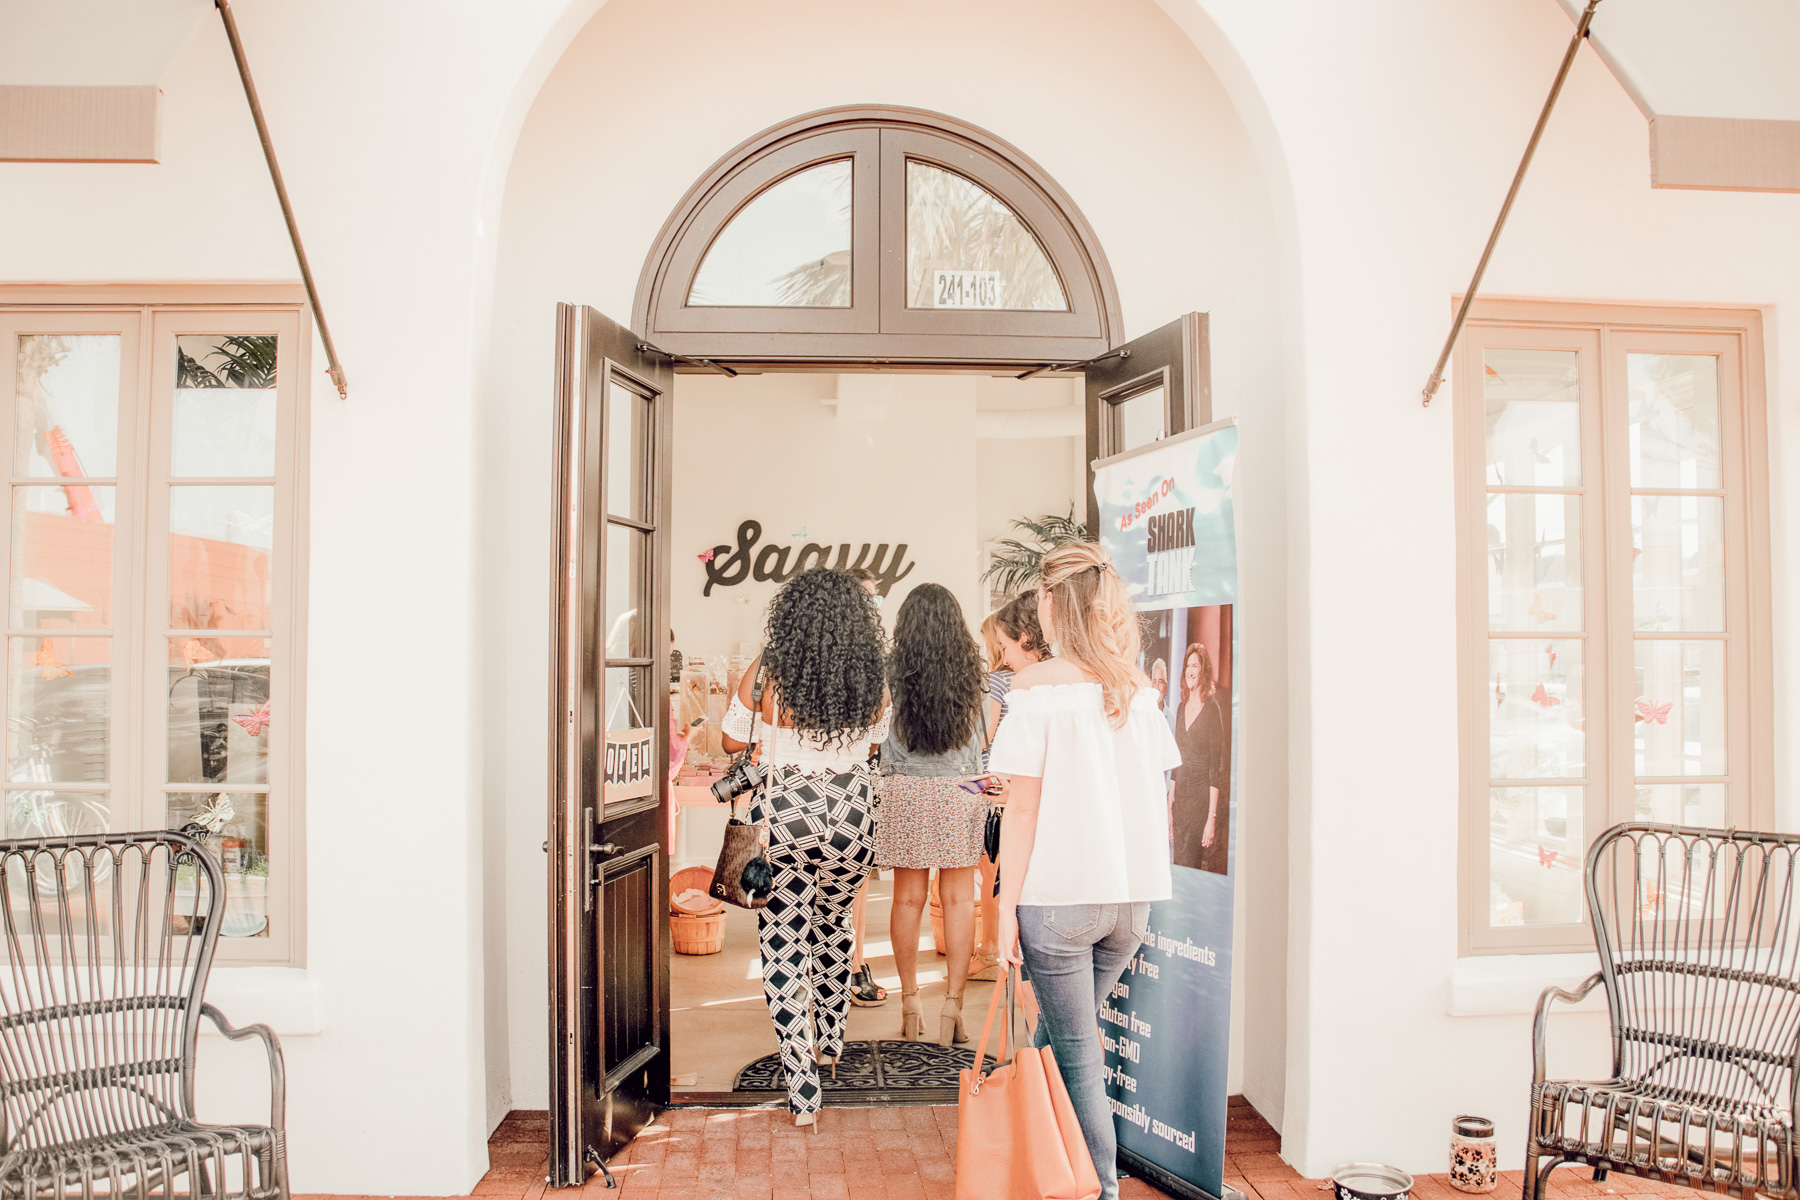 bloggers standing in Saavy Naturals storefront Neptune Beach, Florida